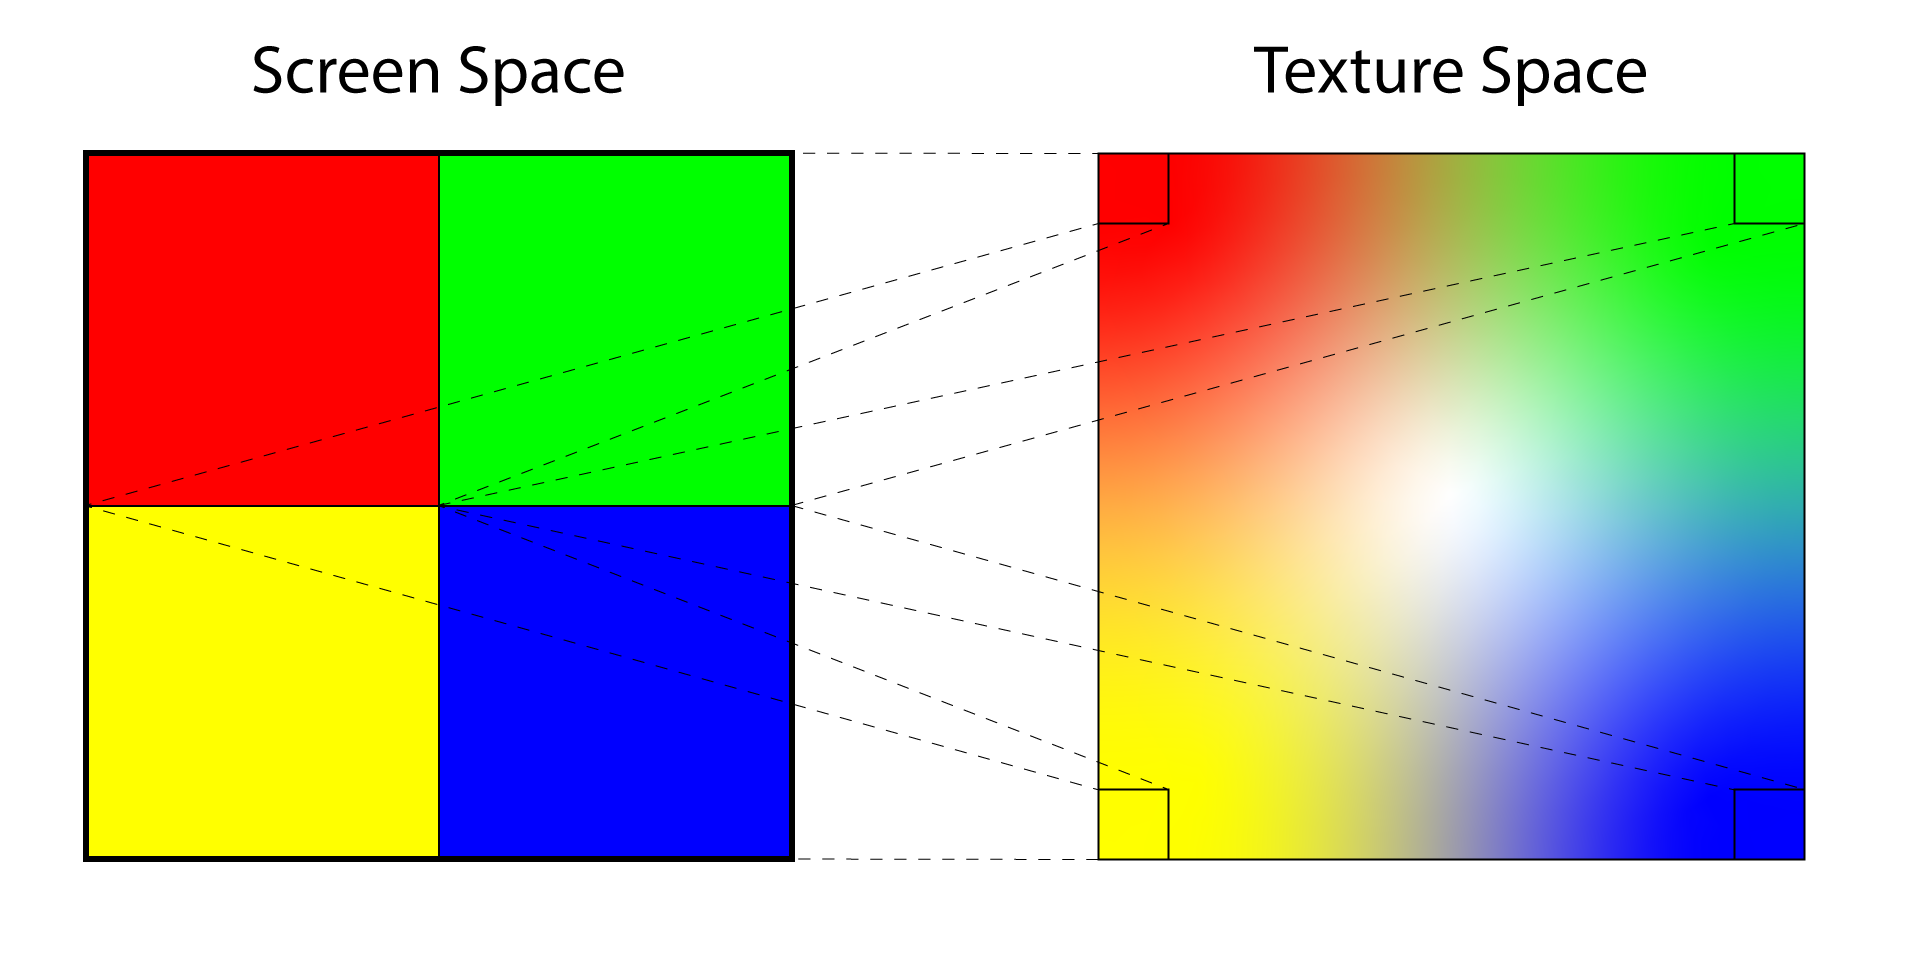 Undersampling occurs when a single screen pixel maps to multiple texels in texture space. The result is noise in the rendered image.